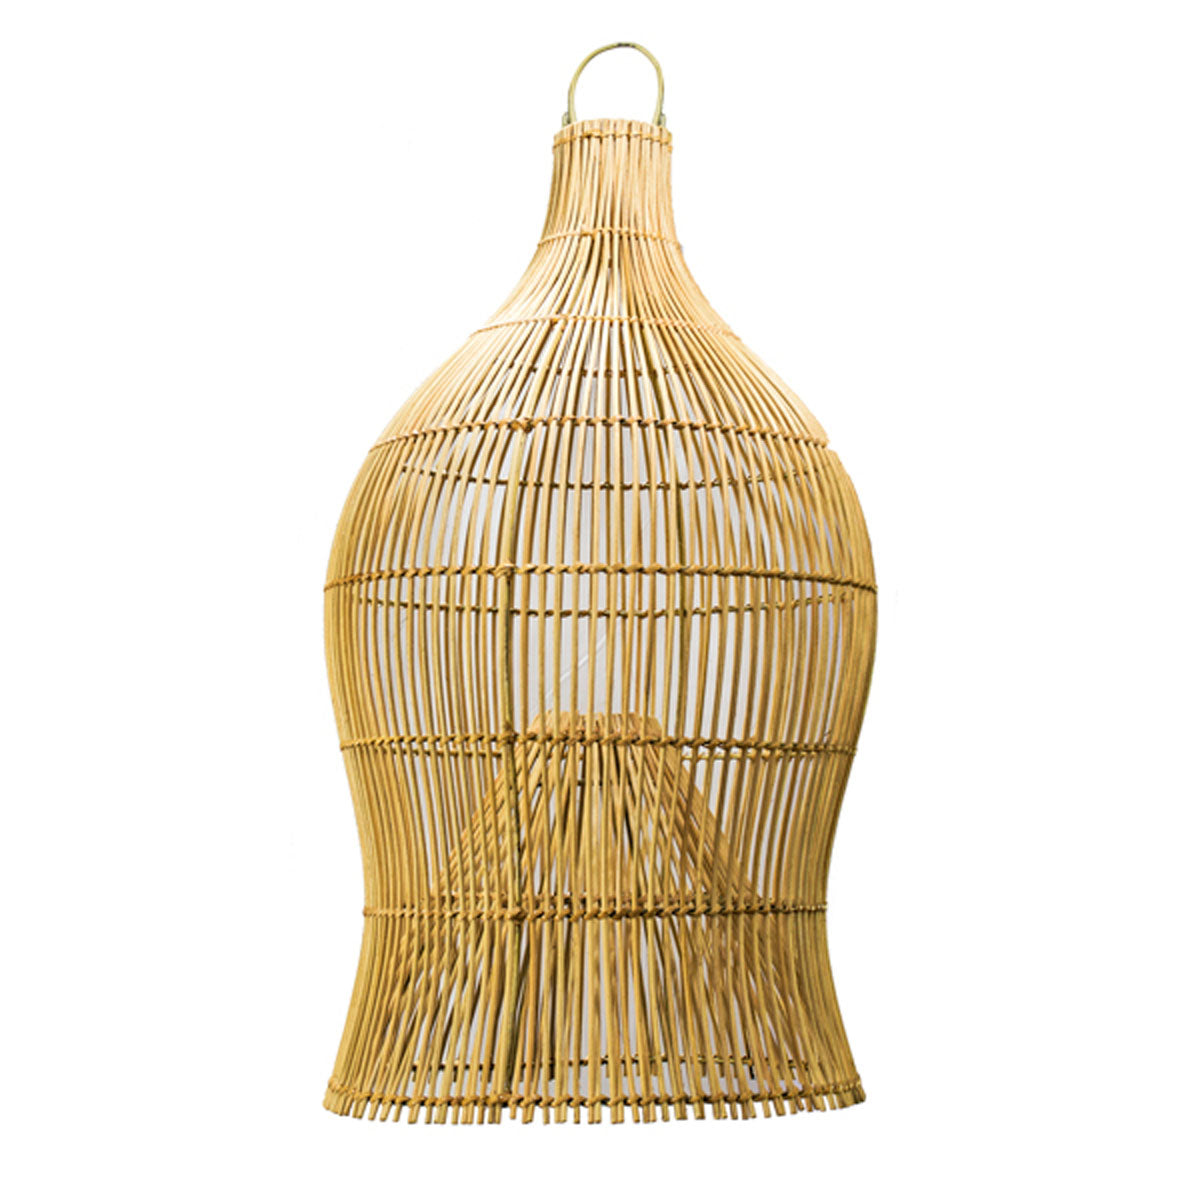 SHL064-19 NATURAL RATTAN PENDANT LAMP